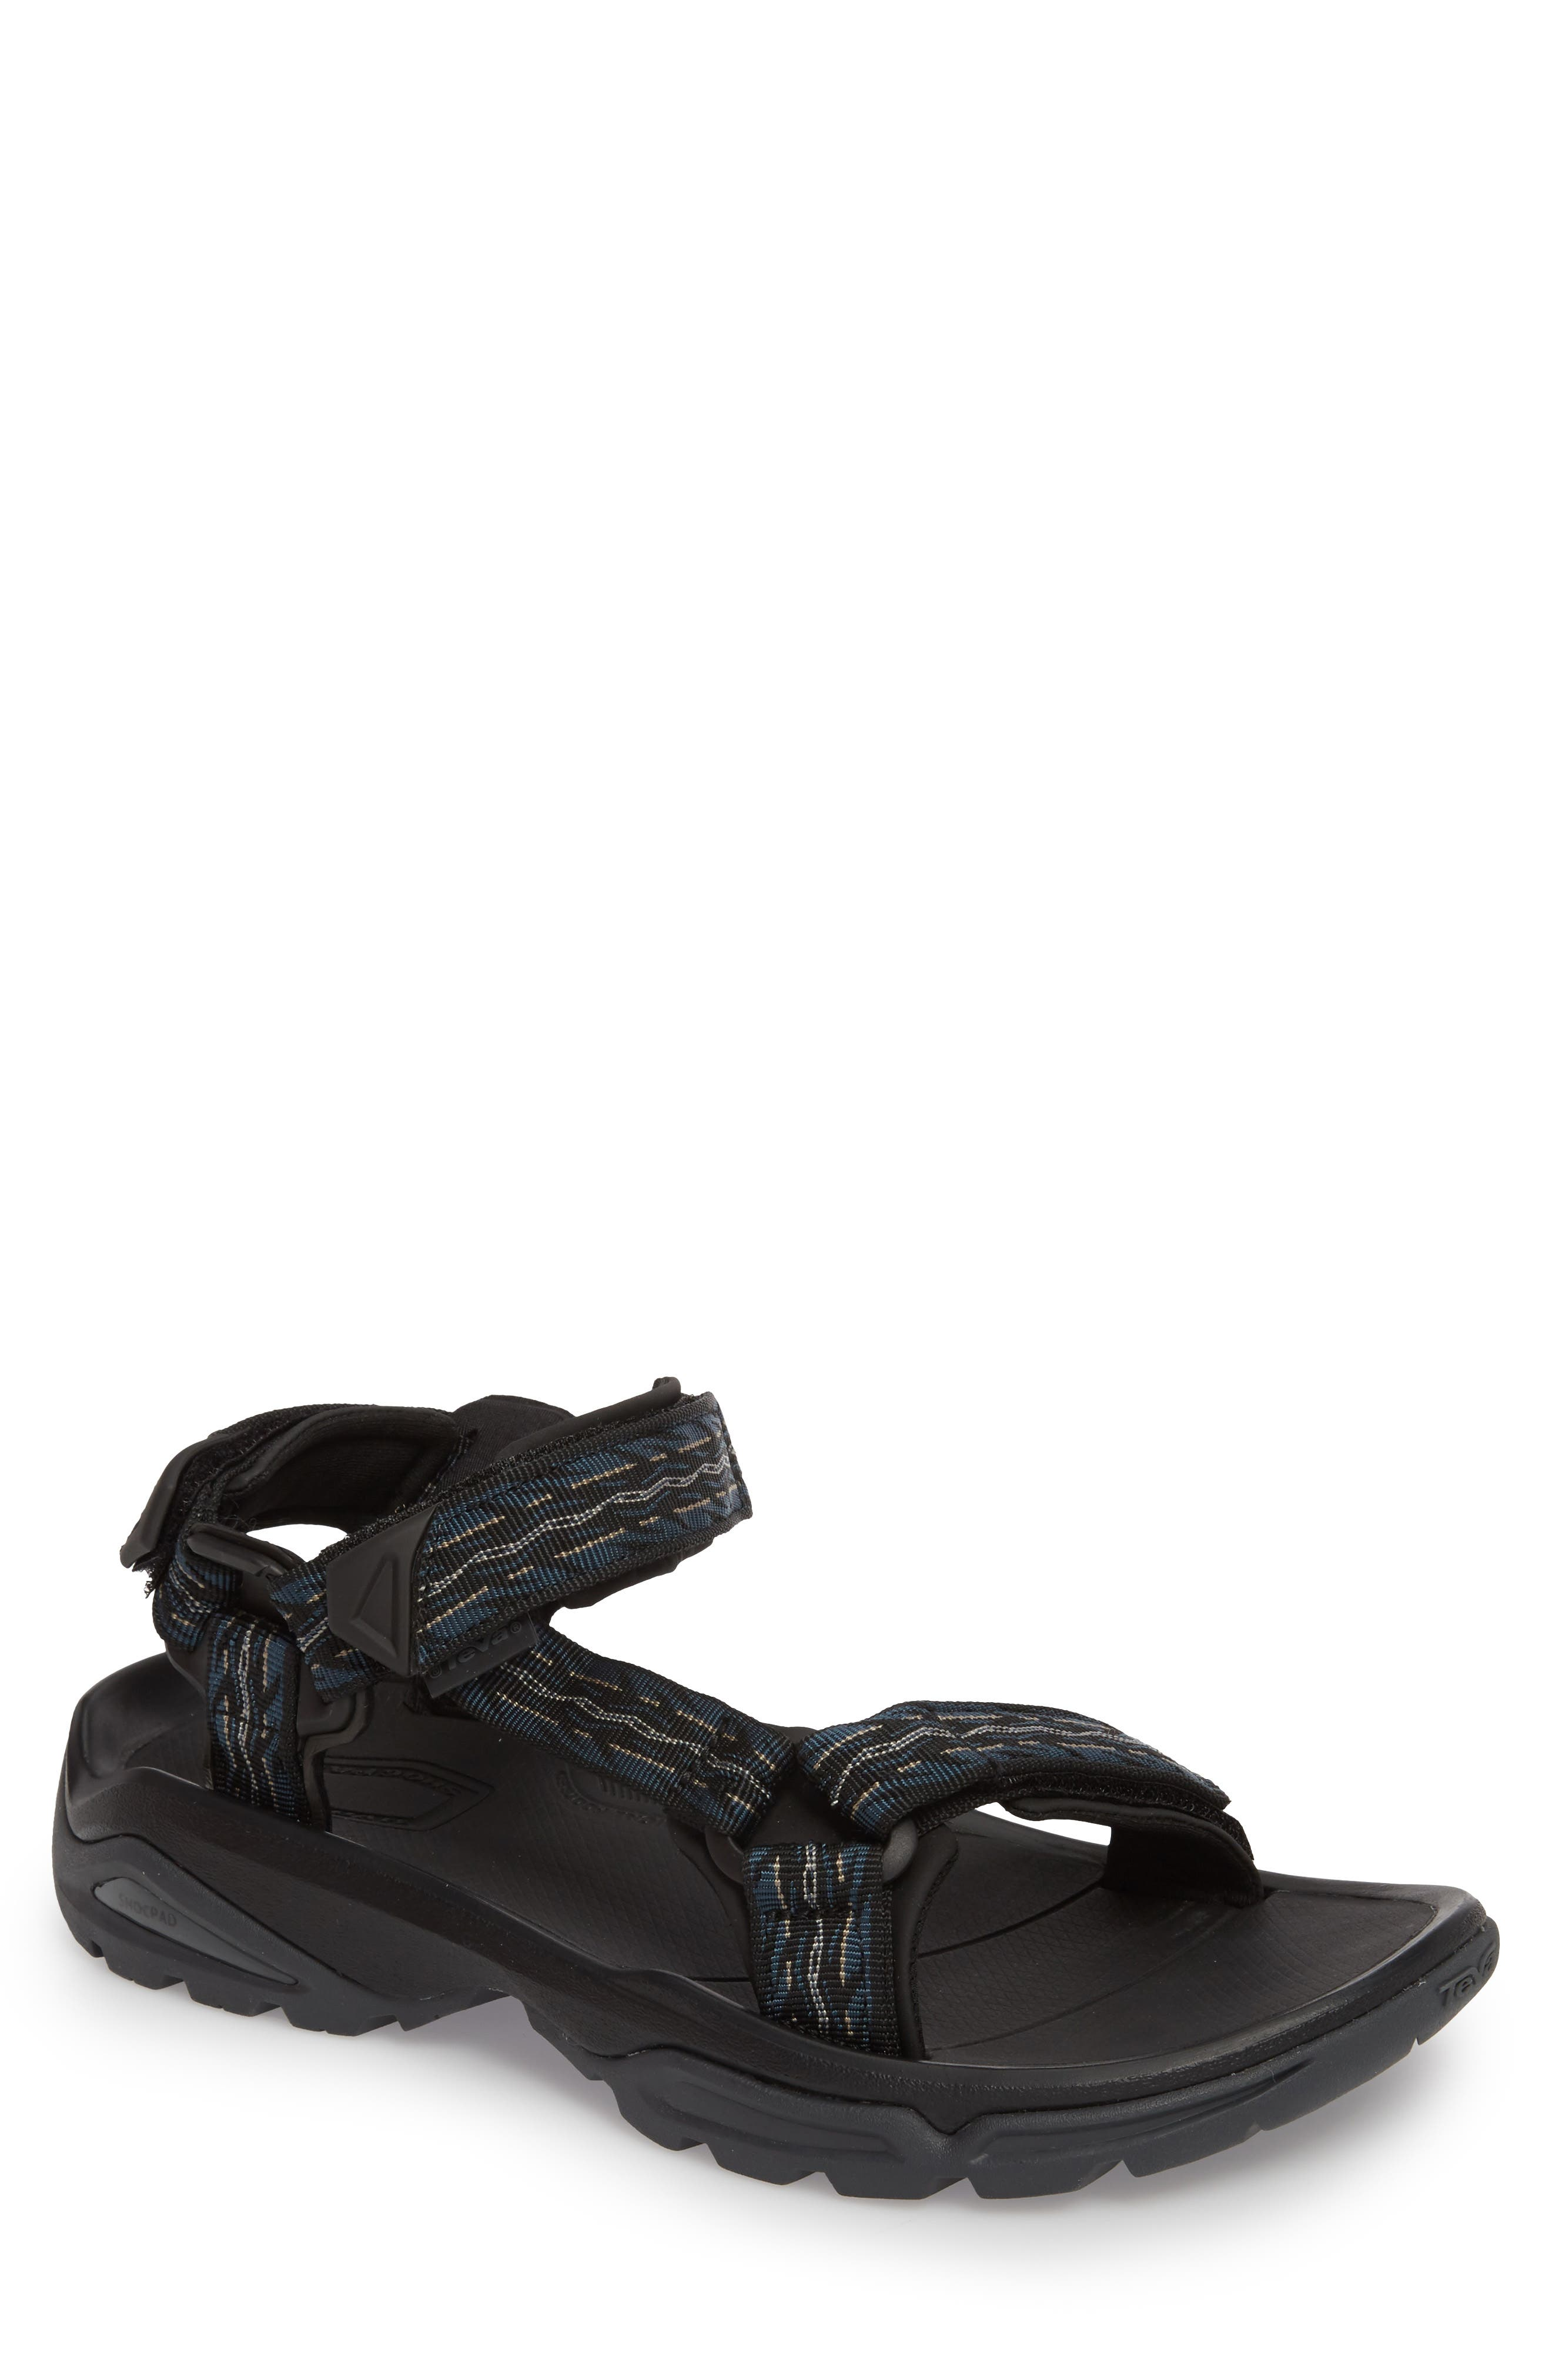 Terra Fi 4 Sport Sandal,                             Main thumbnail 1, color,                             MIDNIGHT BLUE NYLON